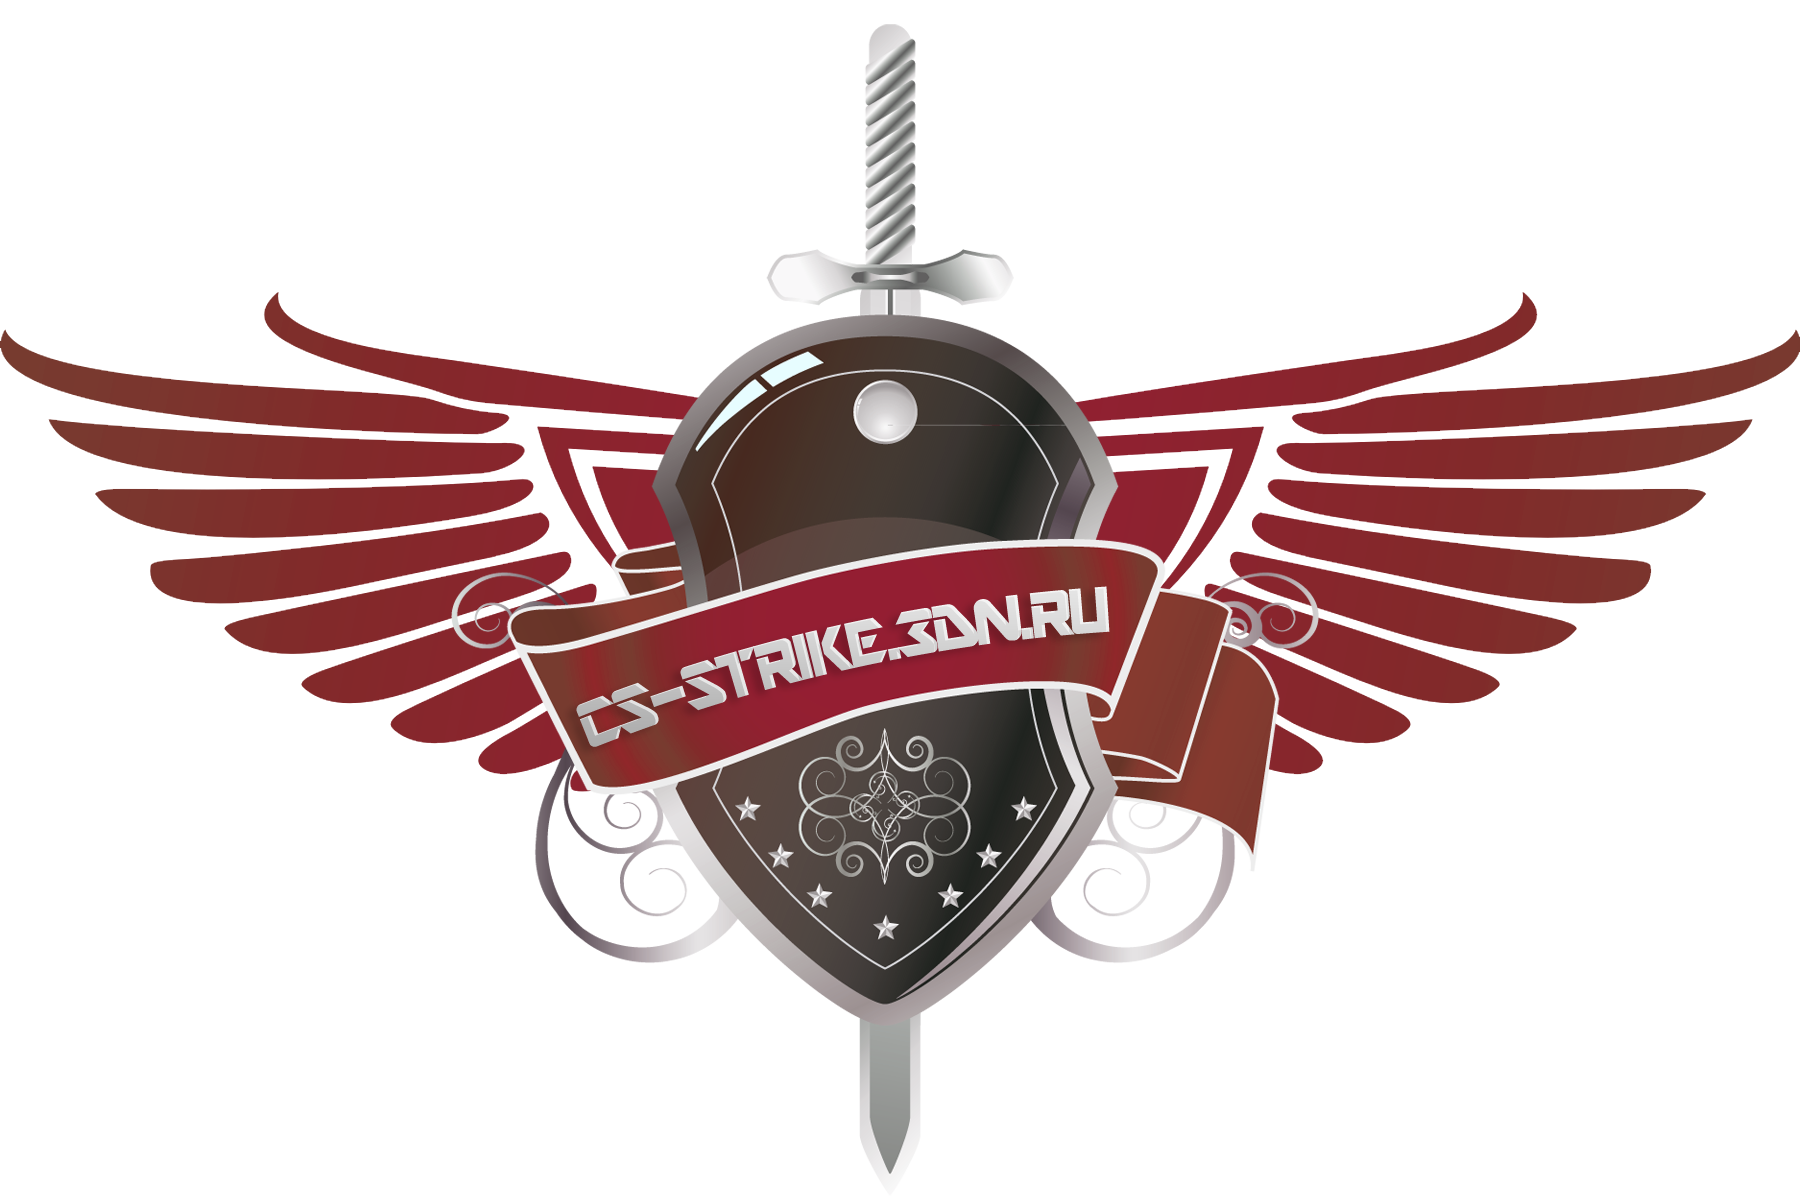 Logo by cs strike